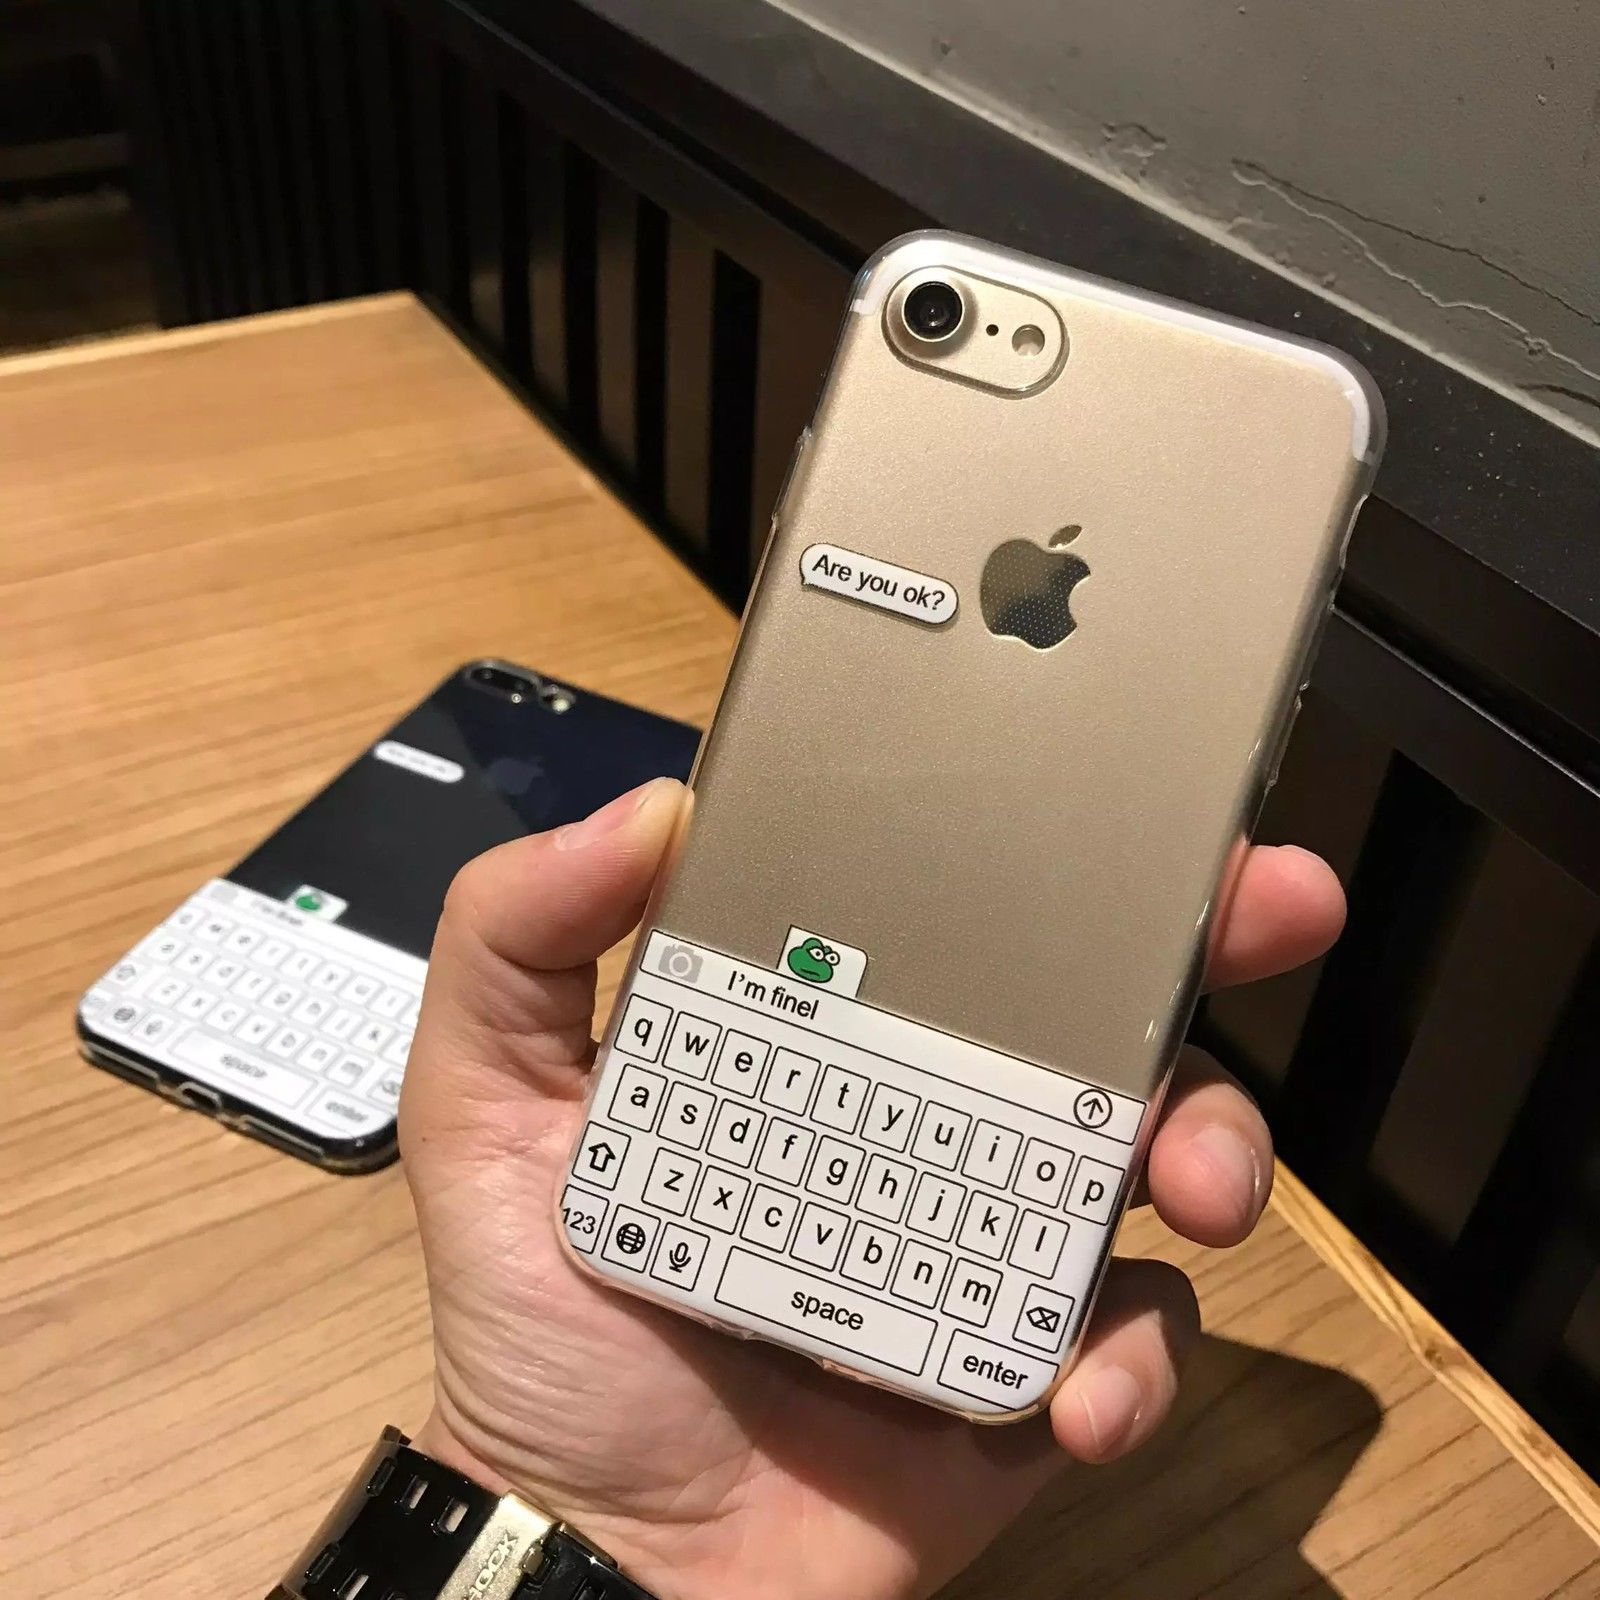 Cute Green Frog Keyboard Clear Shockproof Soft Case For Iphone X 8 7 2in1 Shark Hybrid Armor Hard Huawei P9 6s Plus